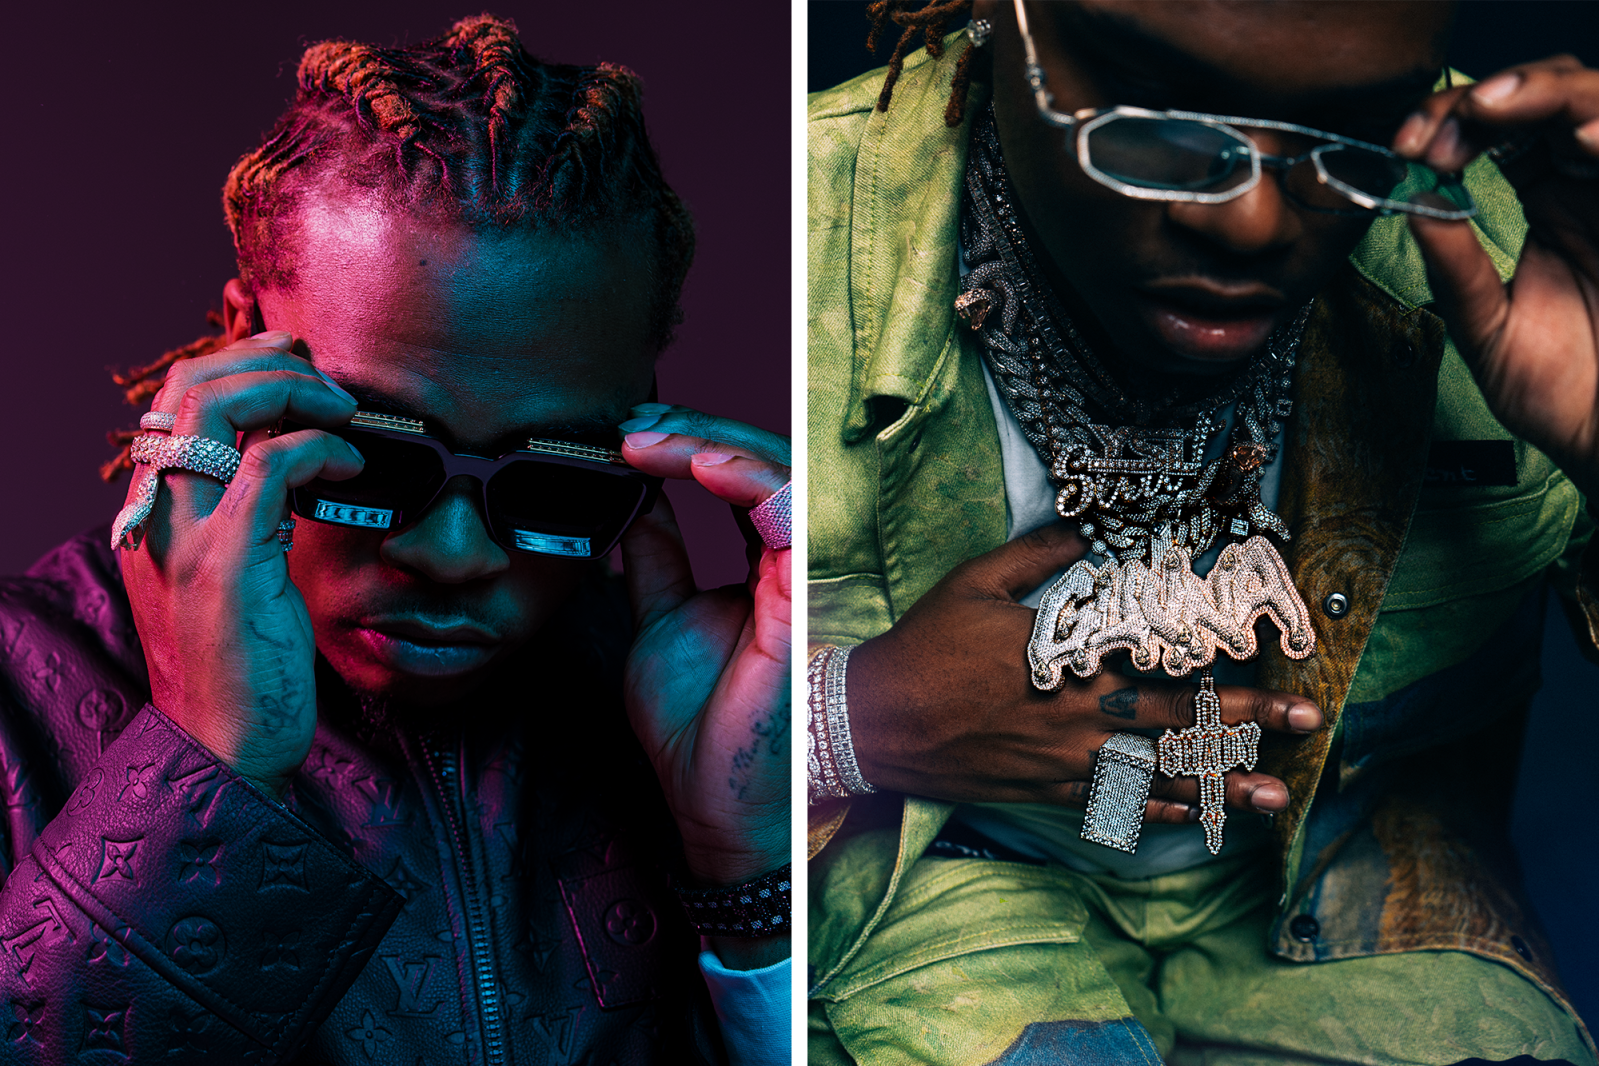 Gunna WUNNA Album Interview Rap Rapper Atlanta ATL Young Thug Travis Scott Feature HYPEBEAST HipHop Hip Hop Young Thug YSL Young Stoner Life 300 ENT Entertainment